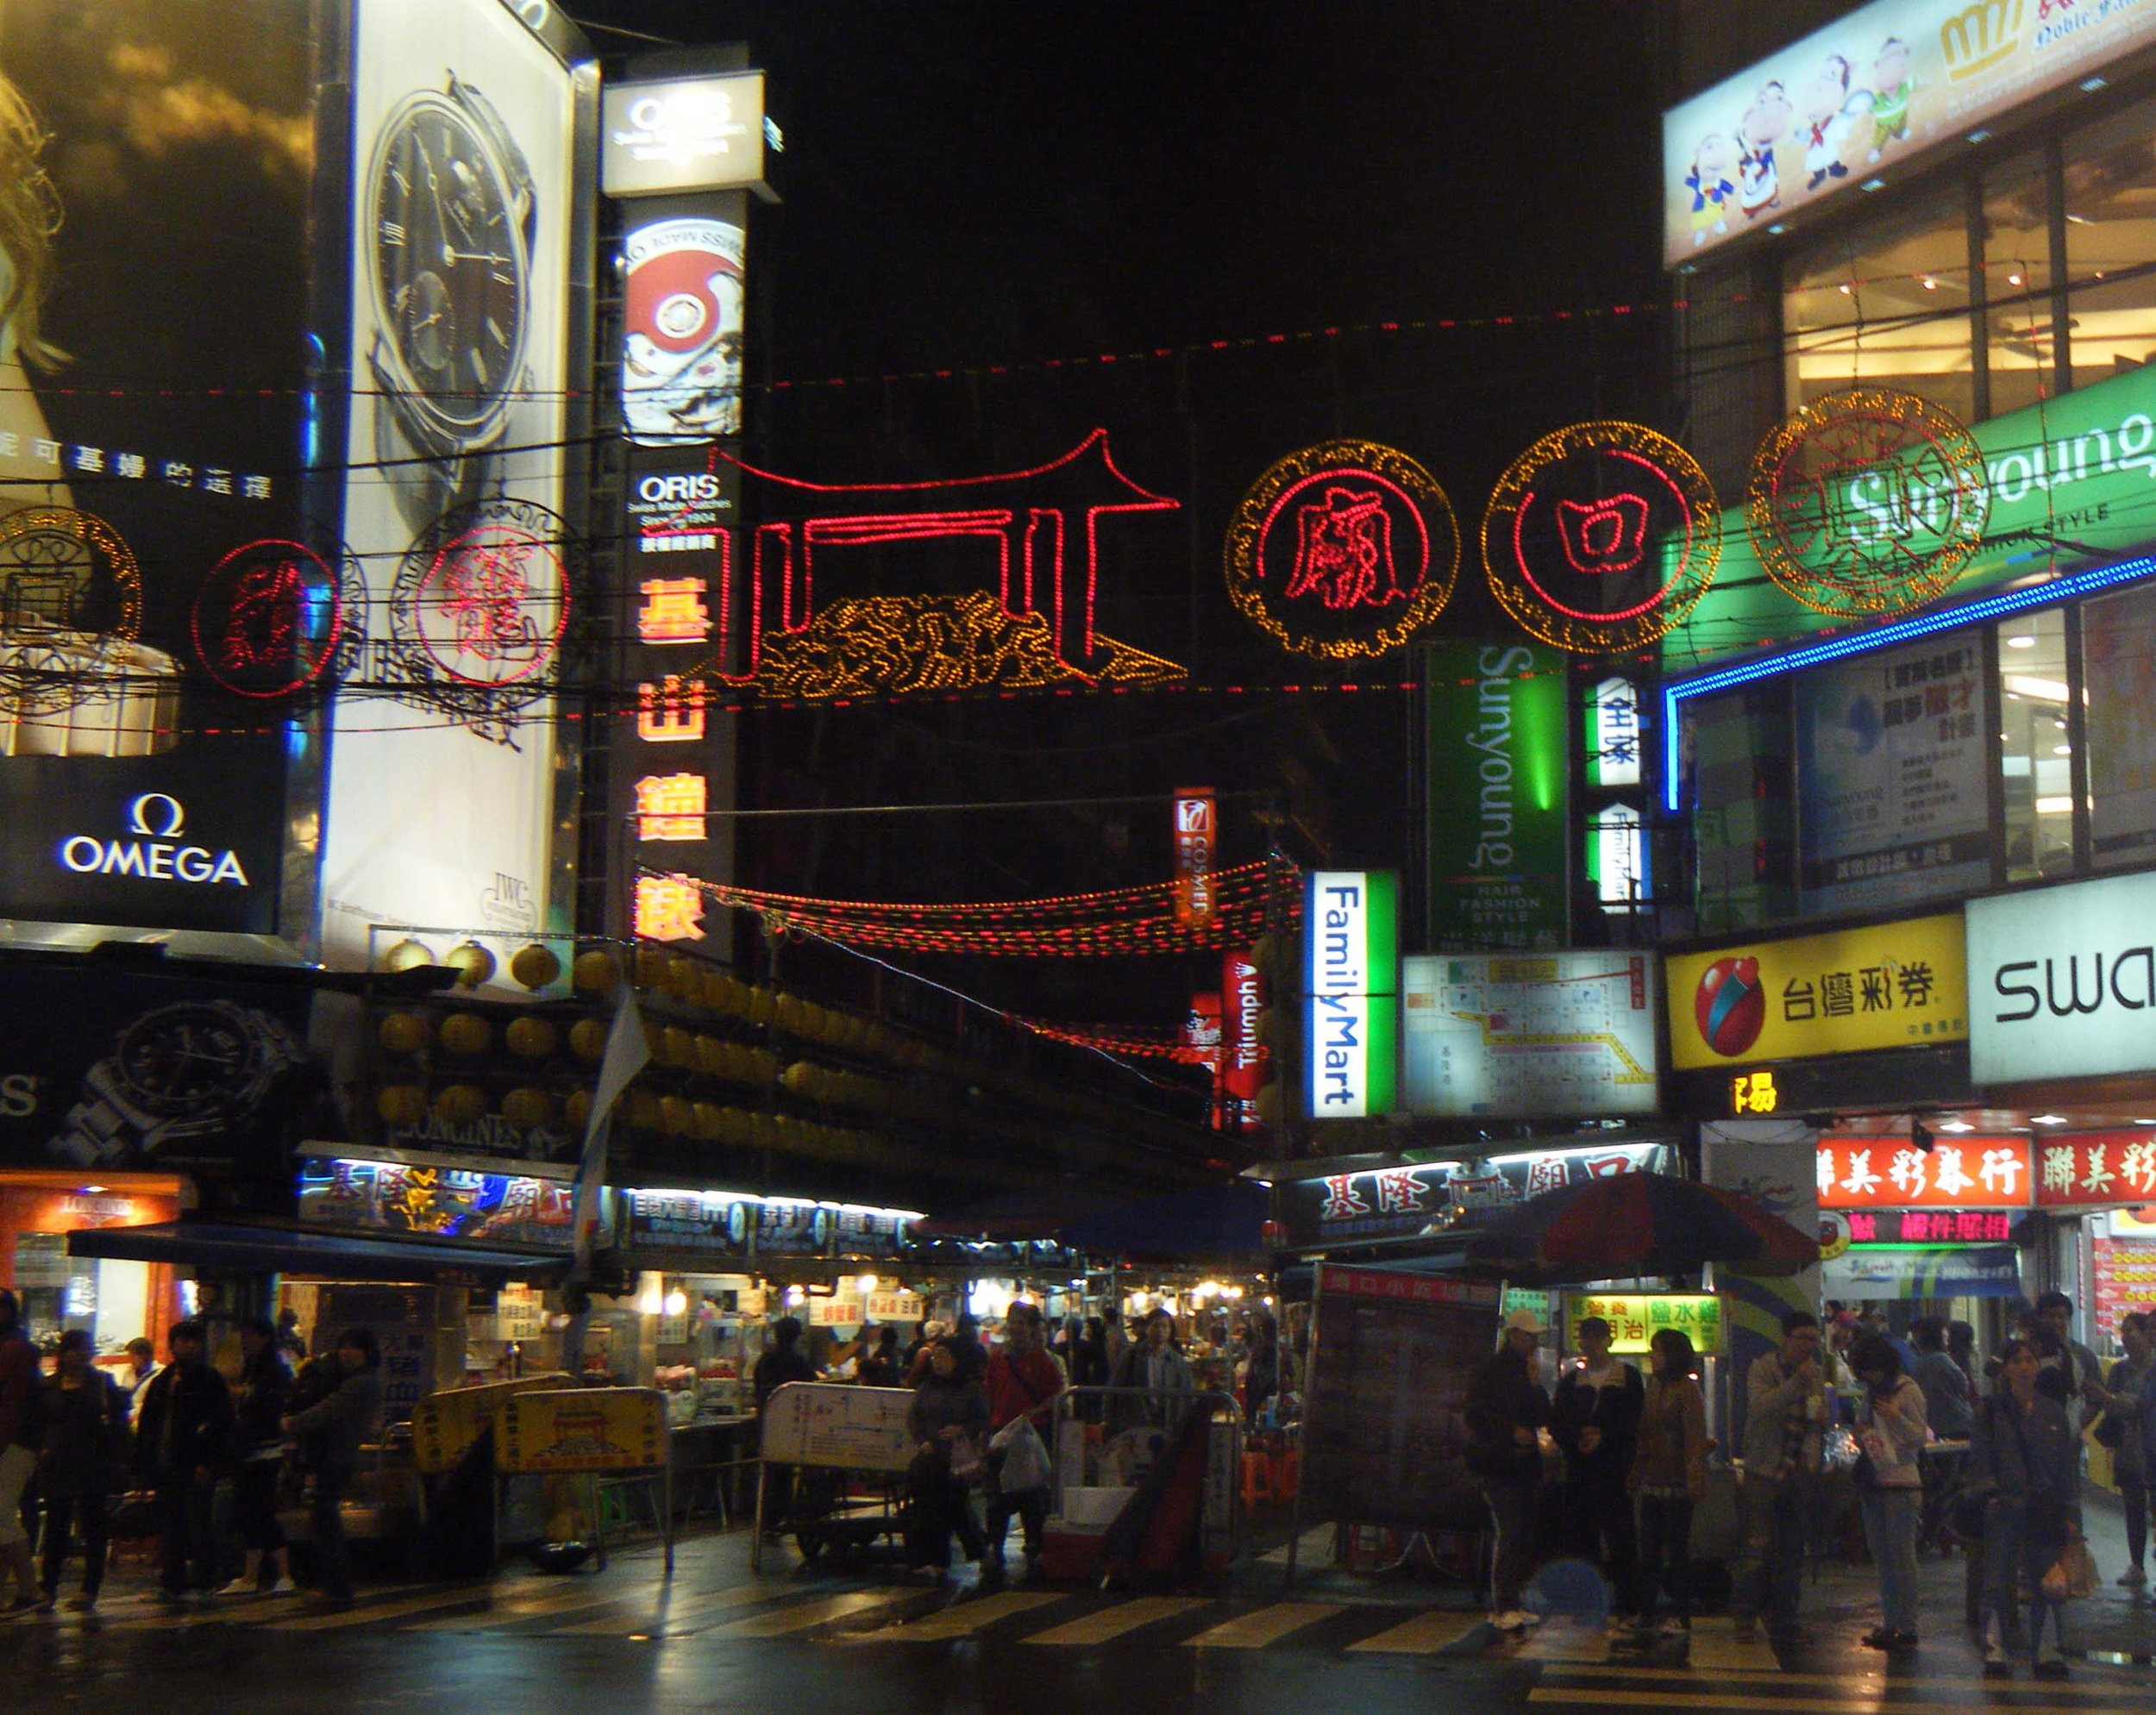 temple plaza night market.jpg